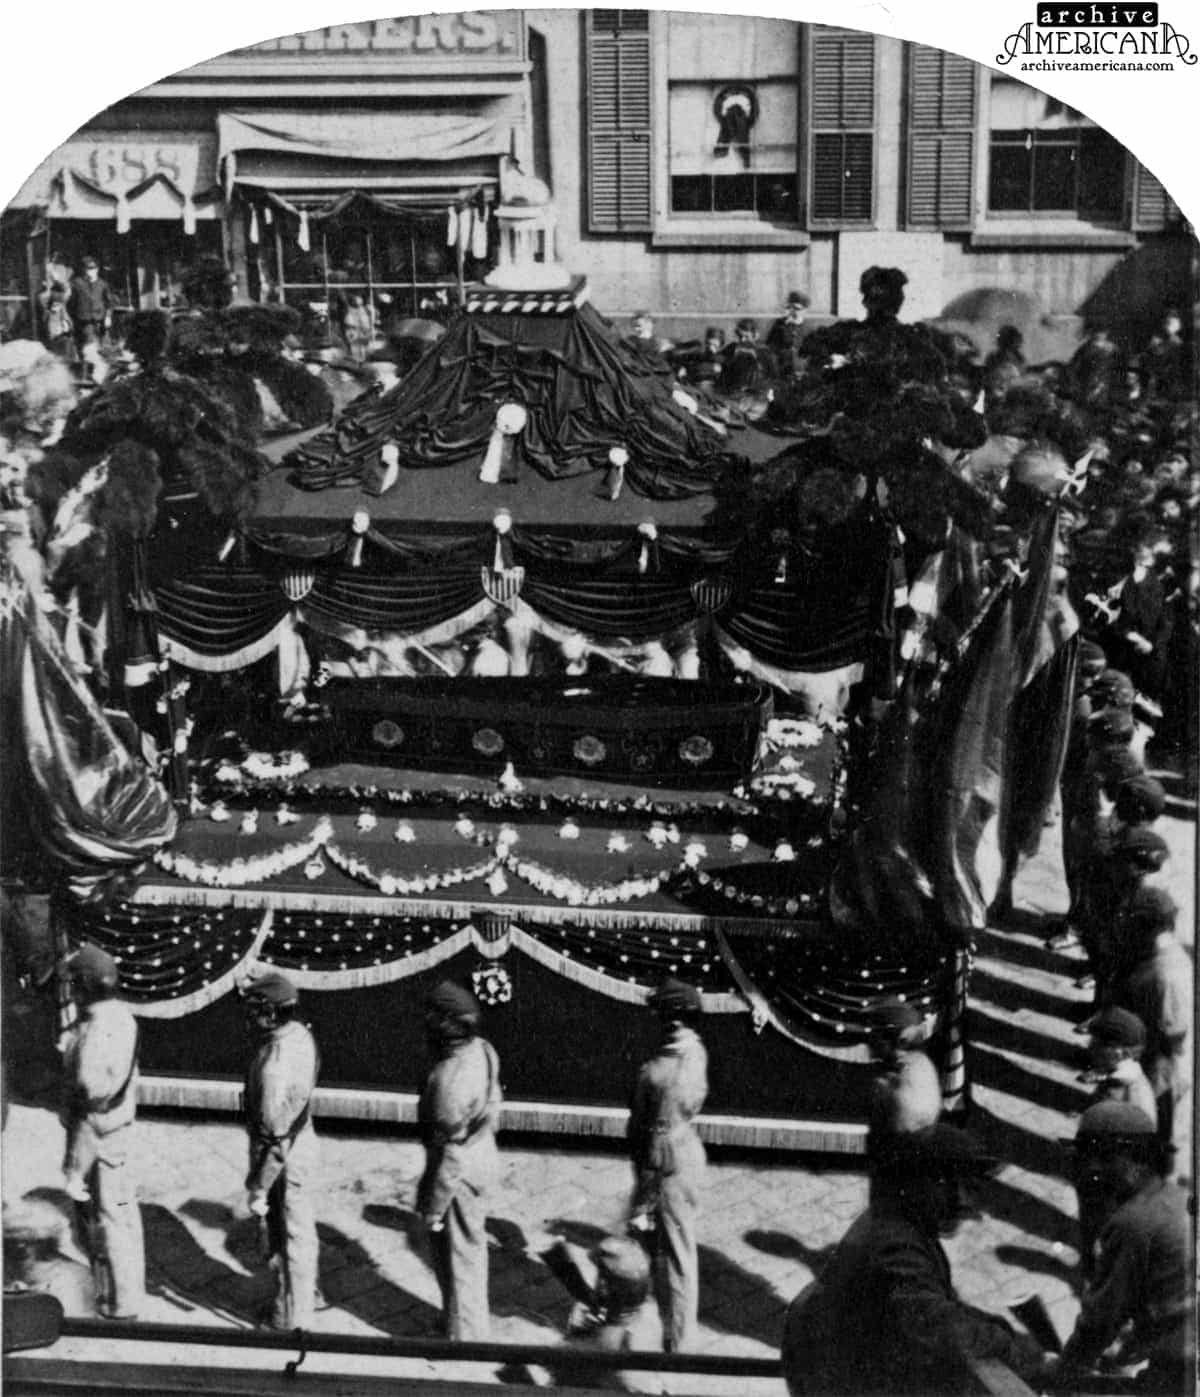 President Lincoln's funeral (1865)